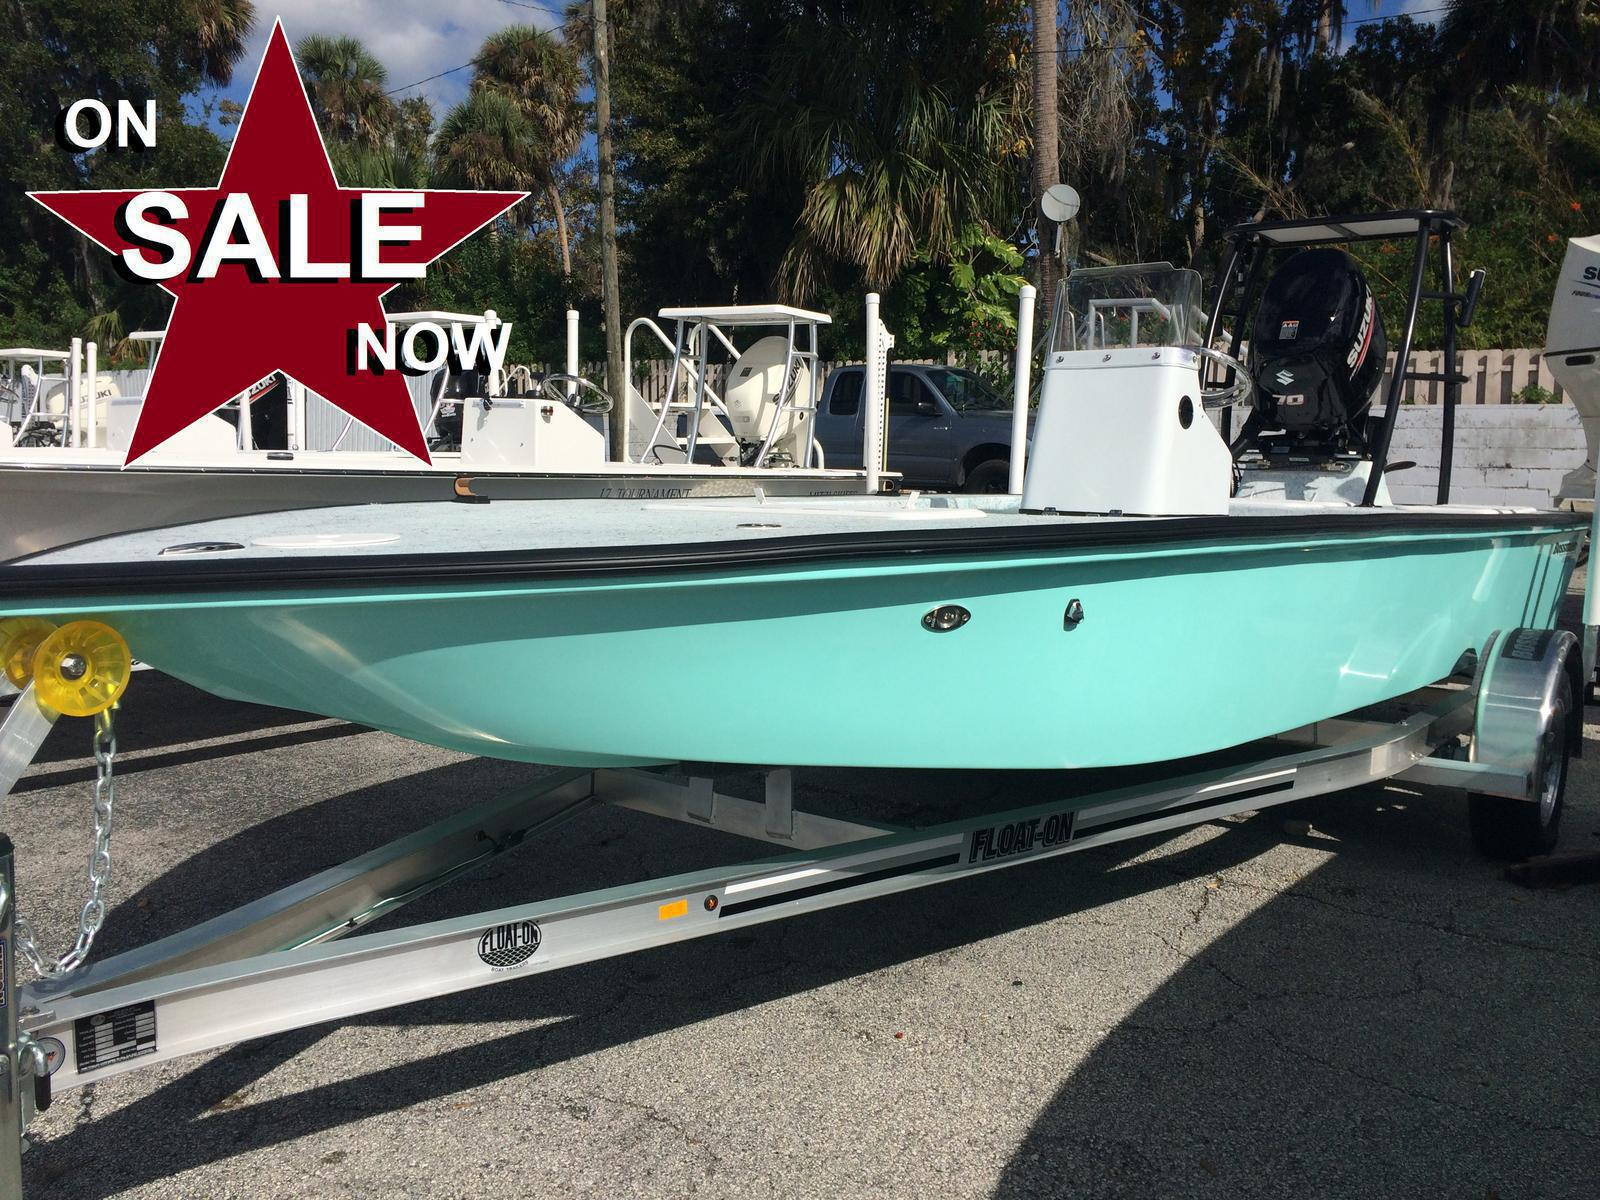 Bossman 18 Skimmer Lodge Edition boats for sale in 34215